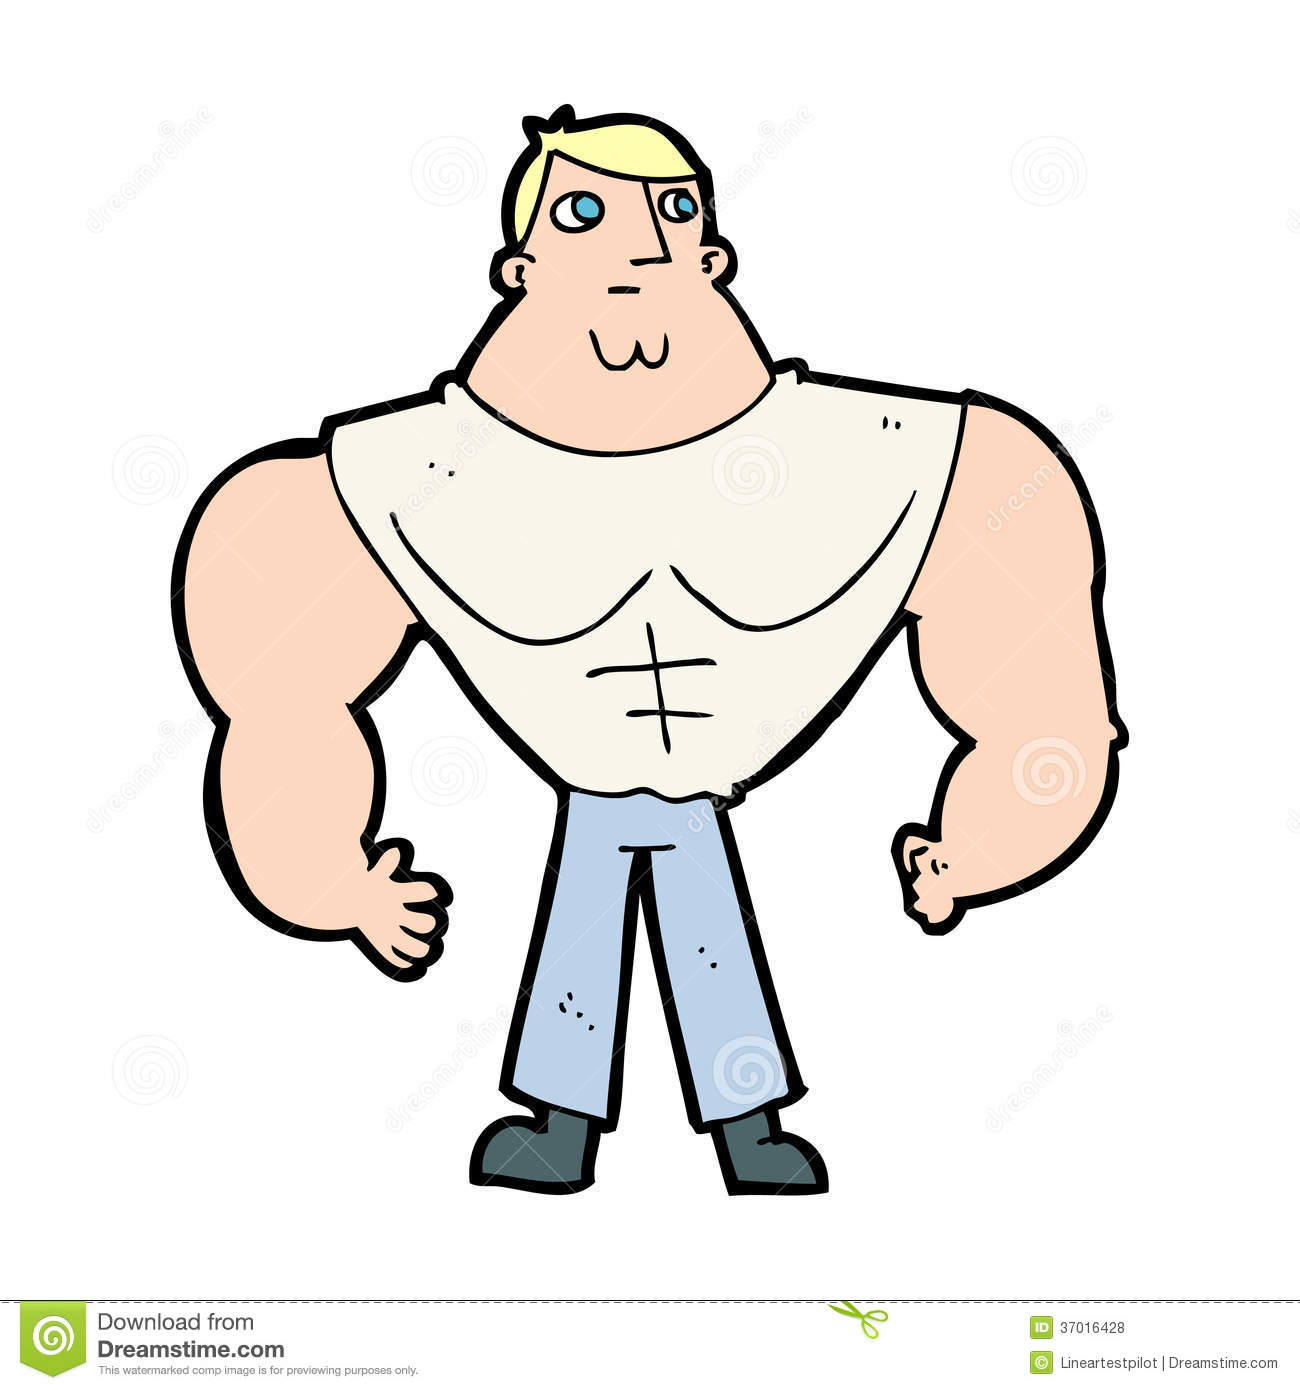 Cartoon body builder royalty free stock photos image - Cartoon body builder ...